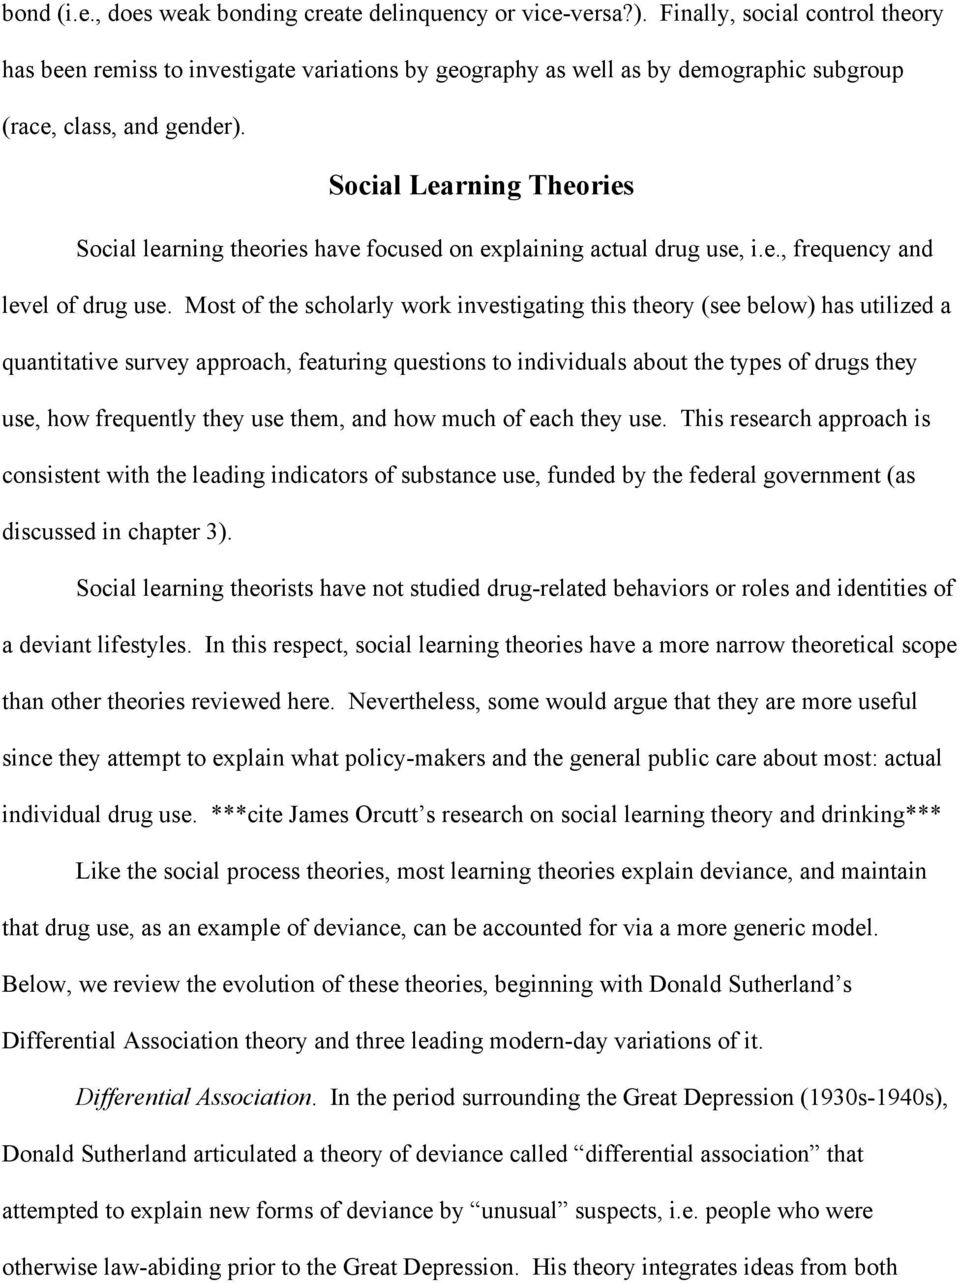 Social Learning Theories Social learning theories have focused on explaining actual drug use, i.e., frequency and level of drug use.